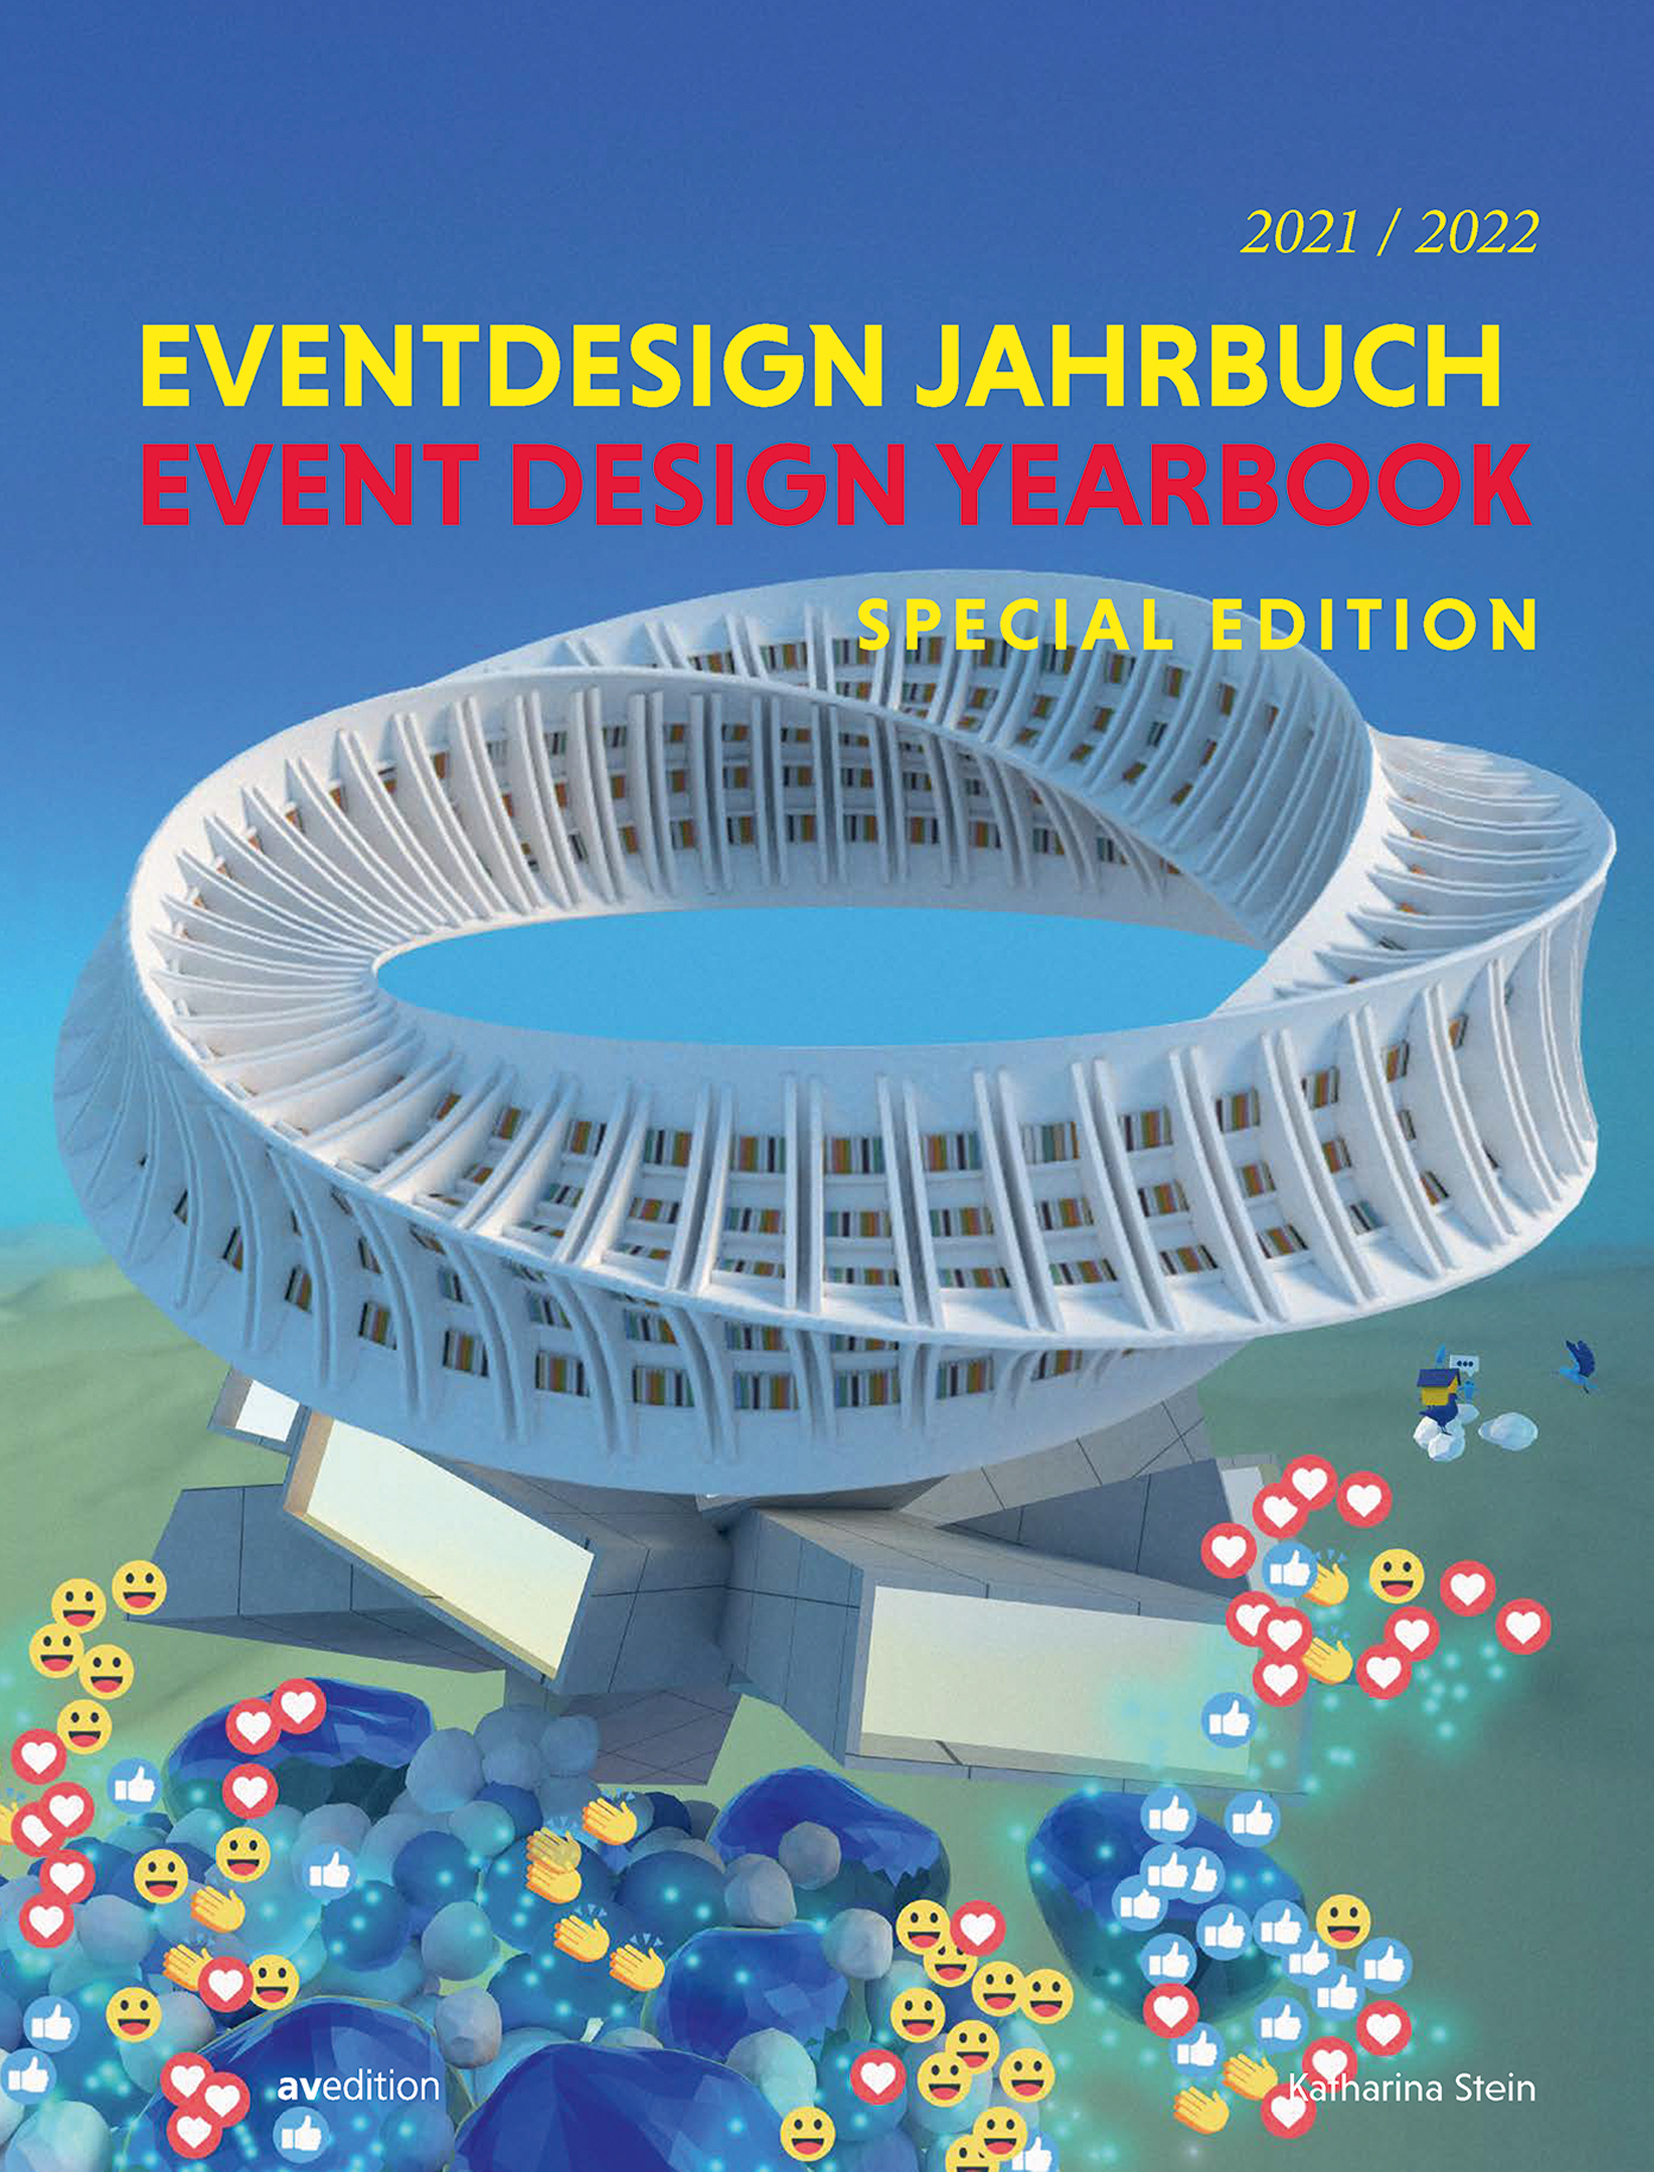 Event Design Yearbook 2021 / 2022